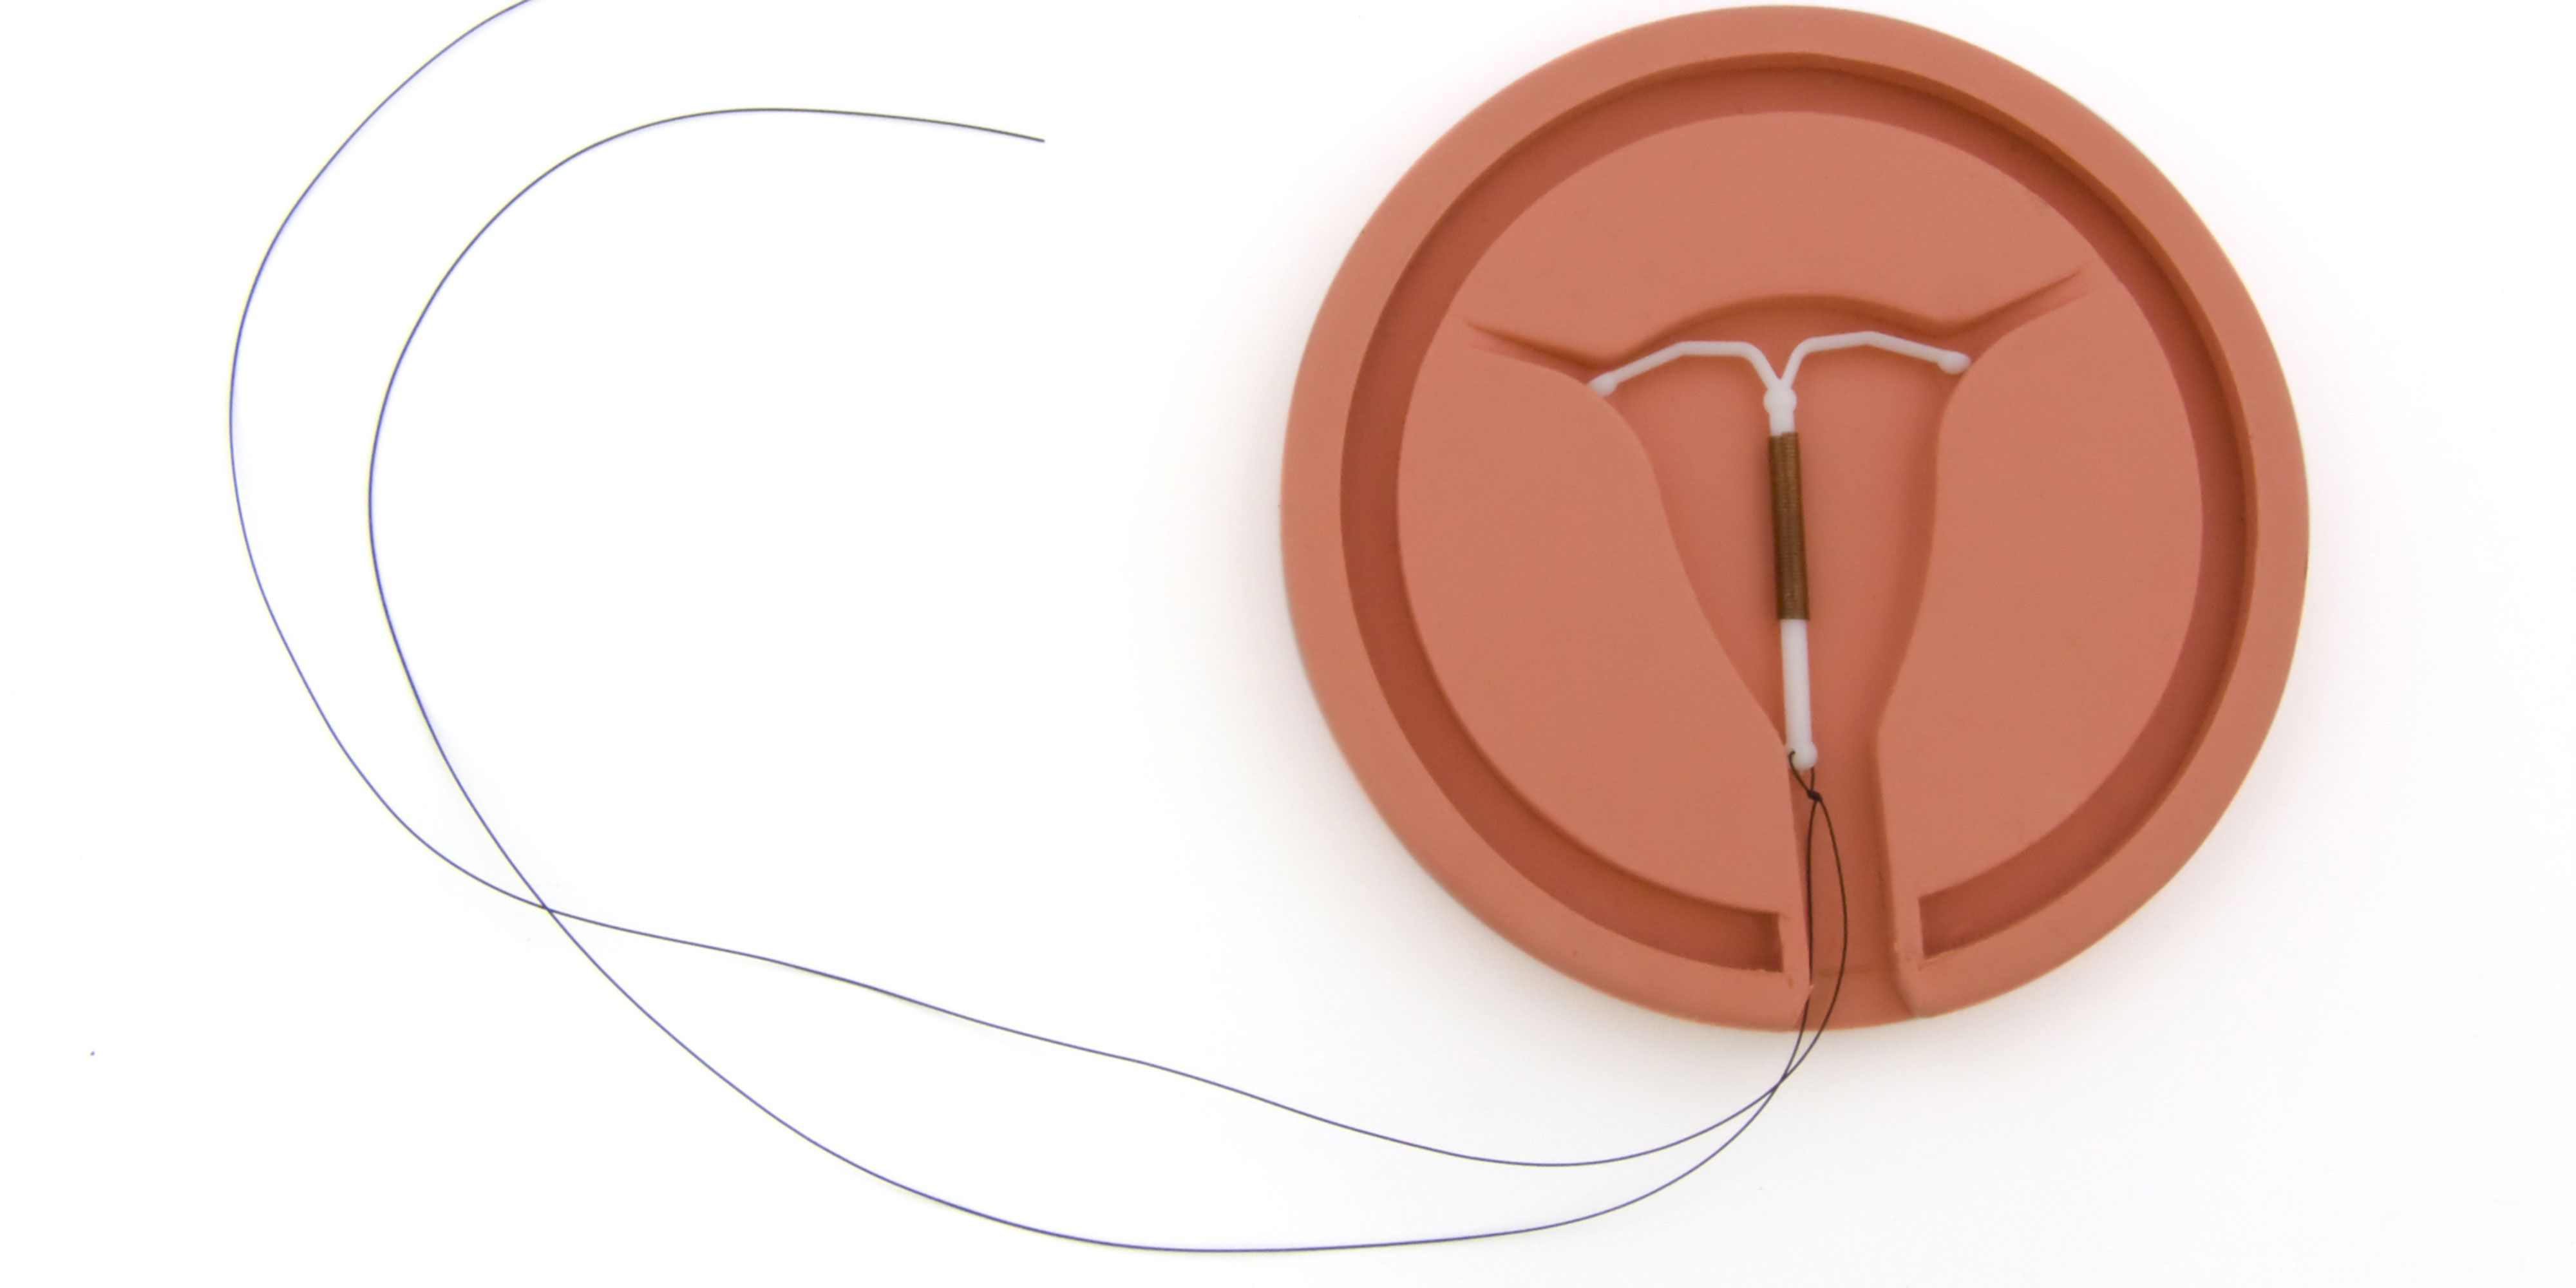 The Coil Iud Pros And Cons